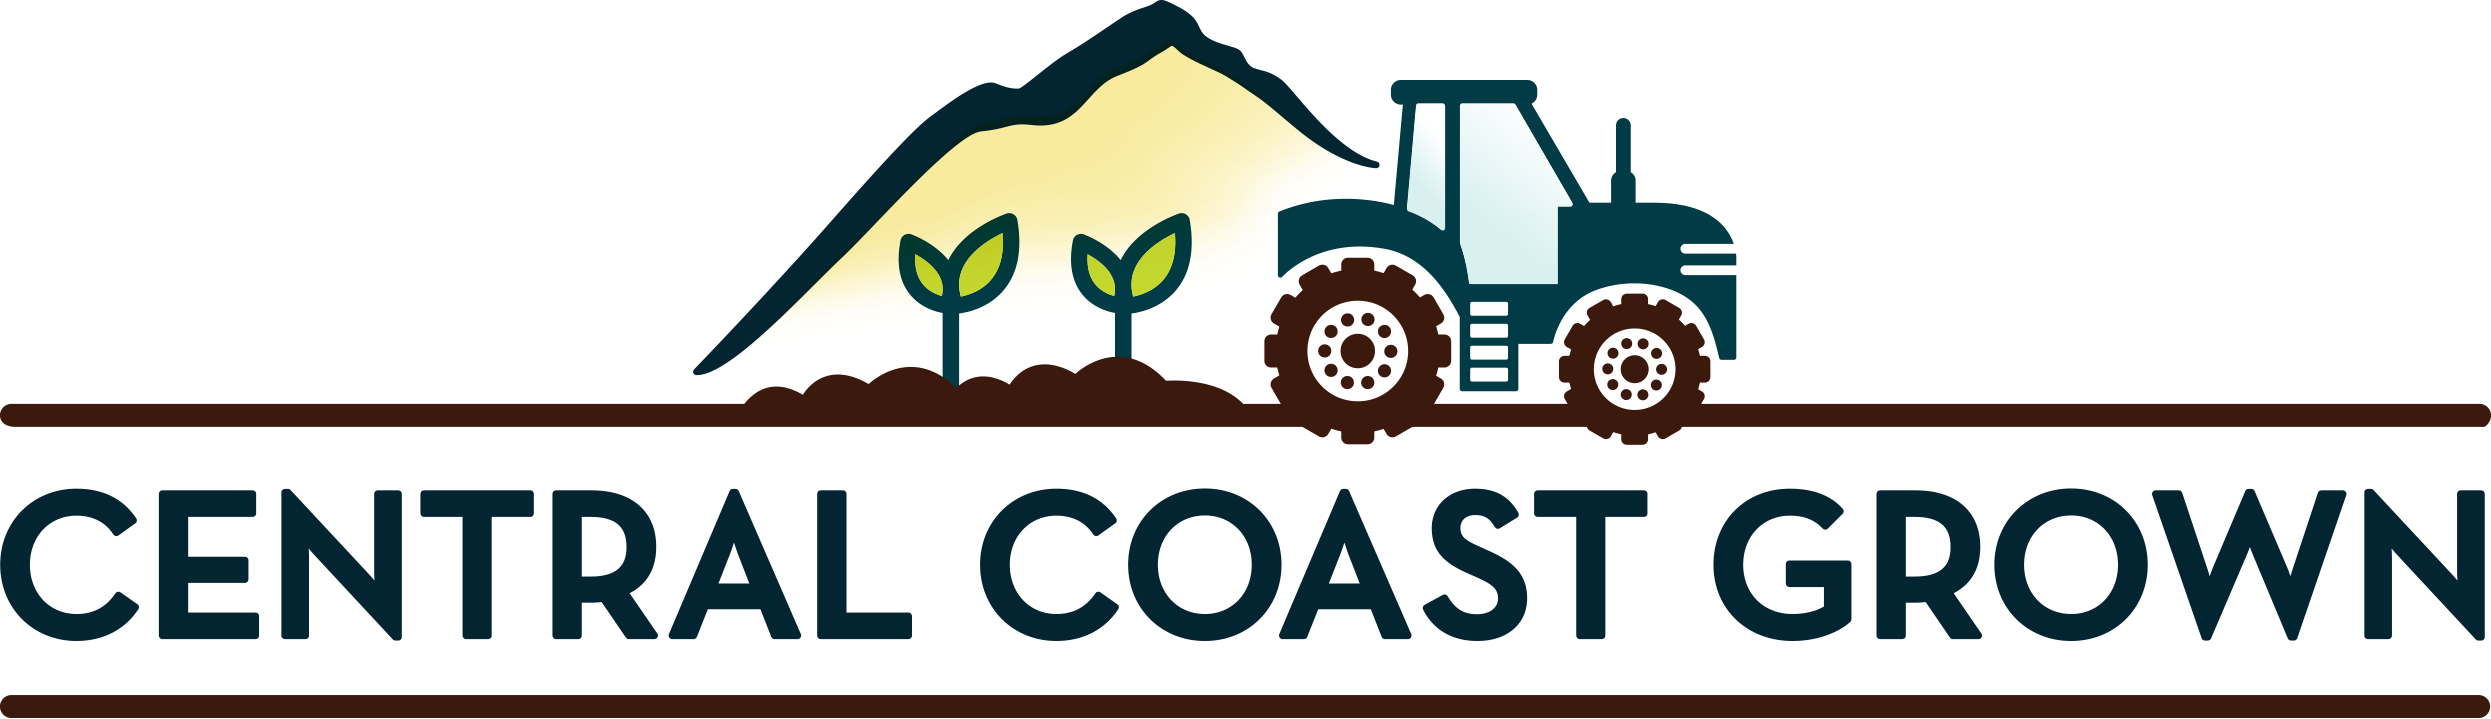 Support Central Coast Grown.